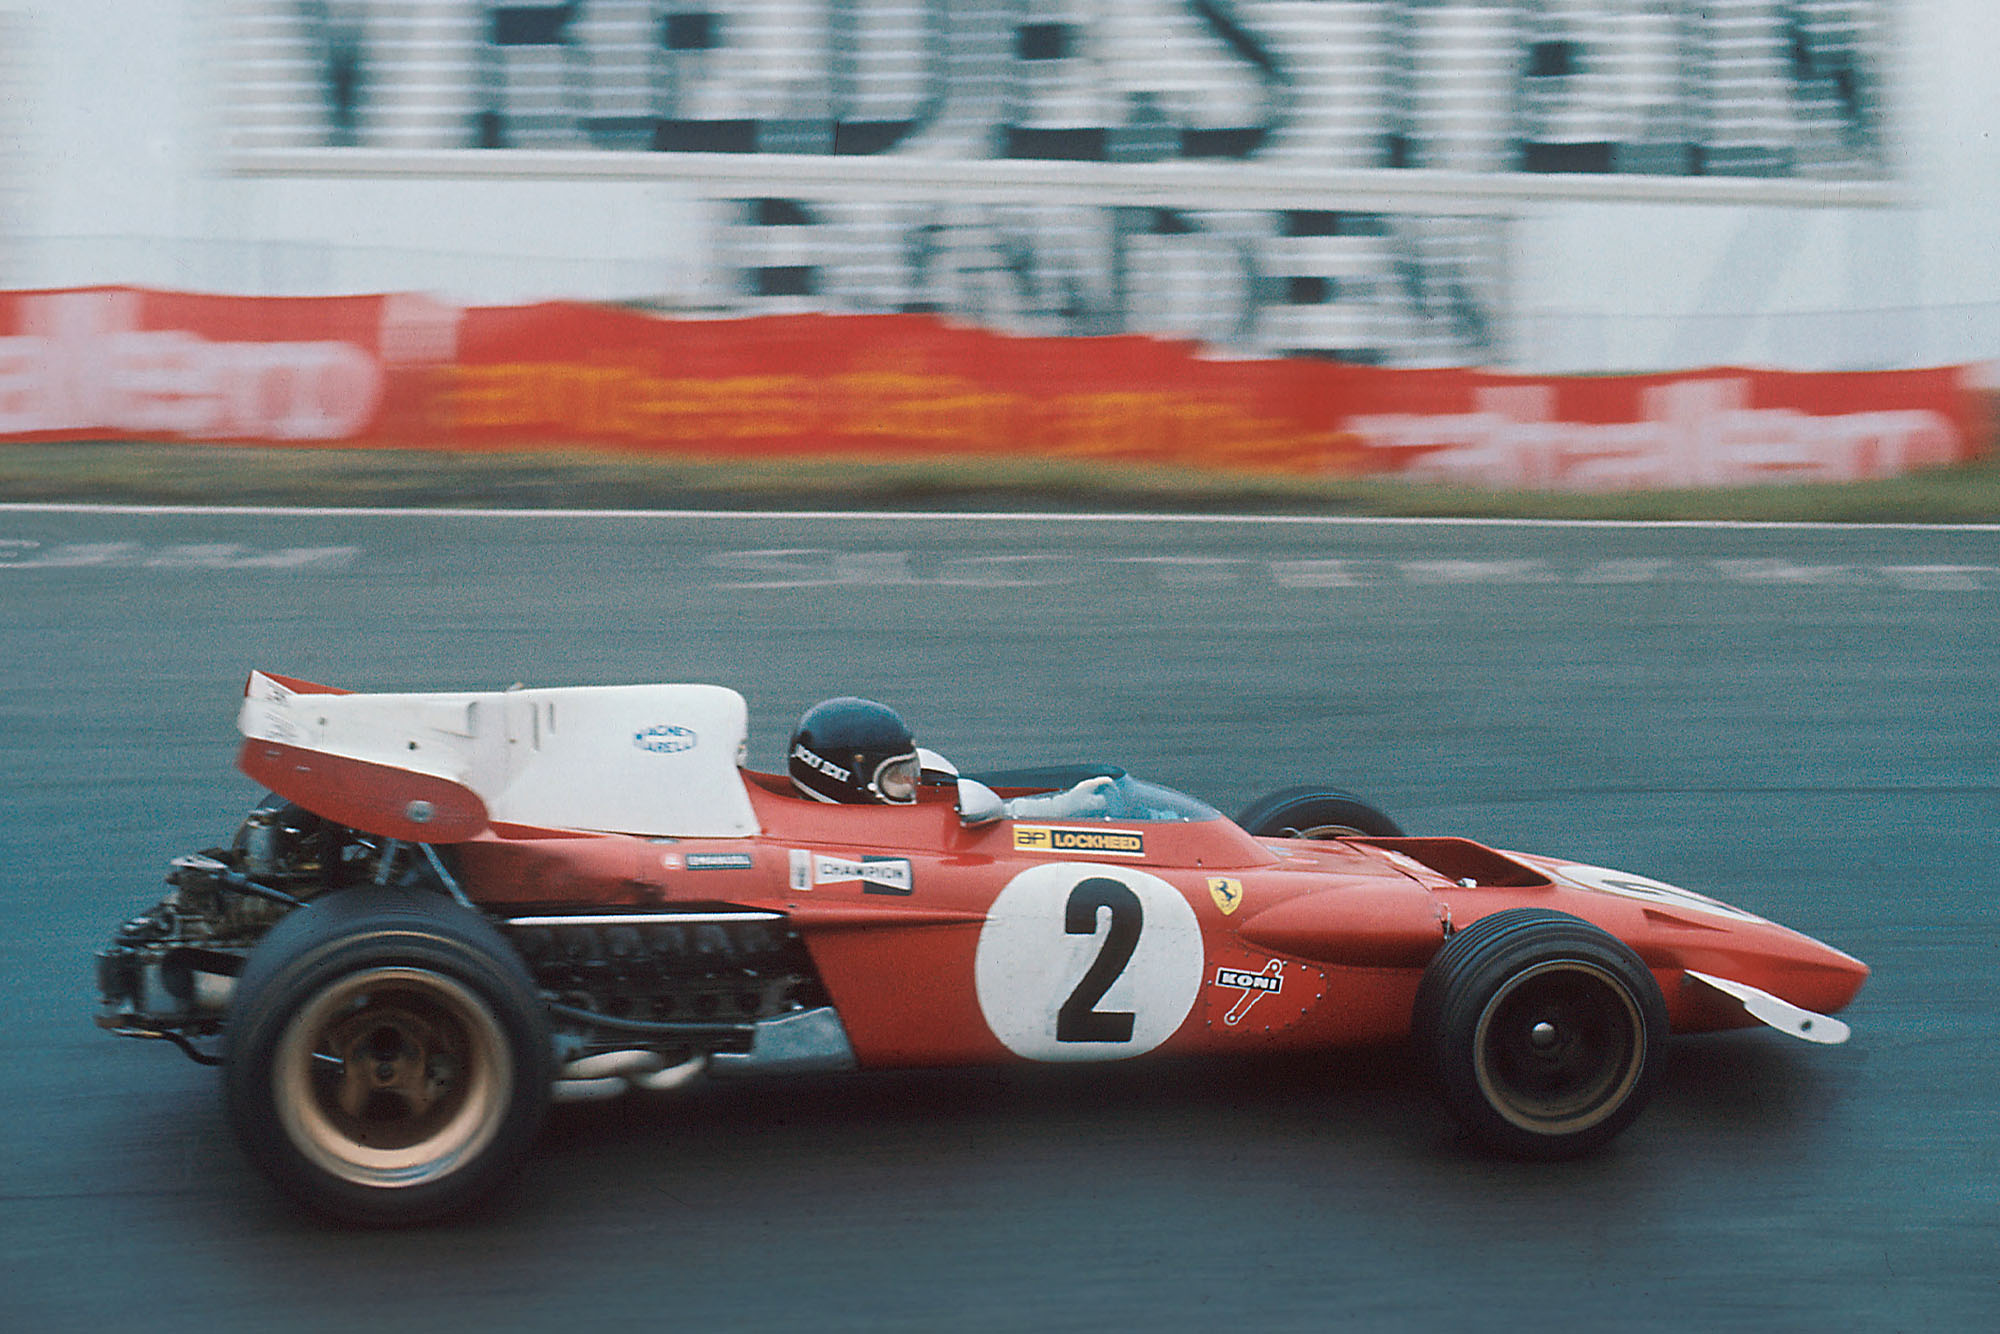 Jacky Ickx driving for Ferrari at the 1970 Dutch Grand Prix